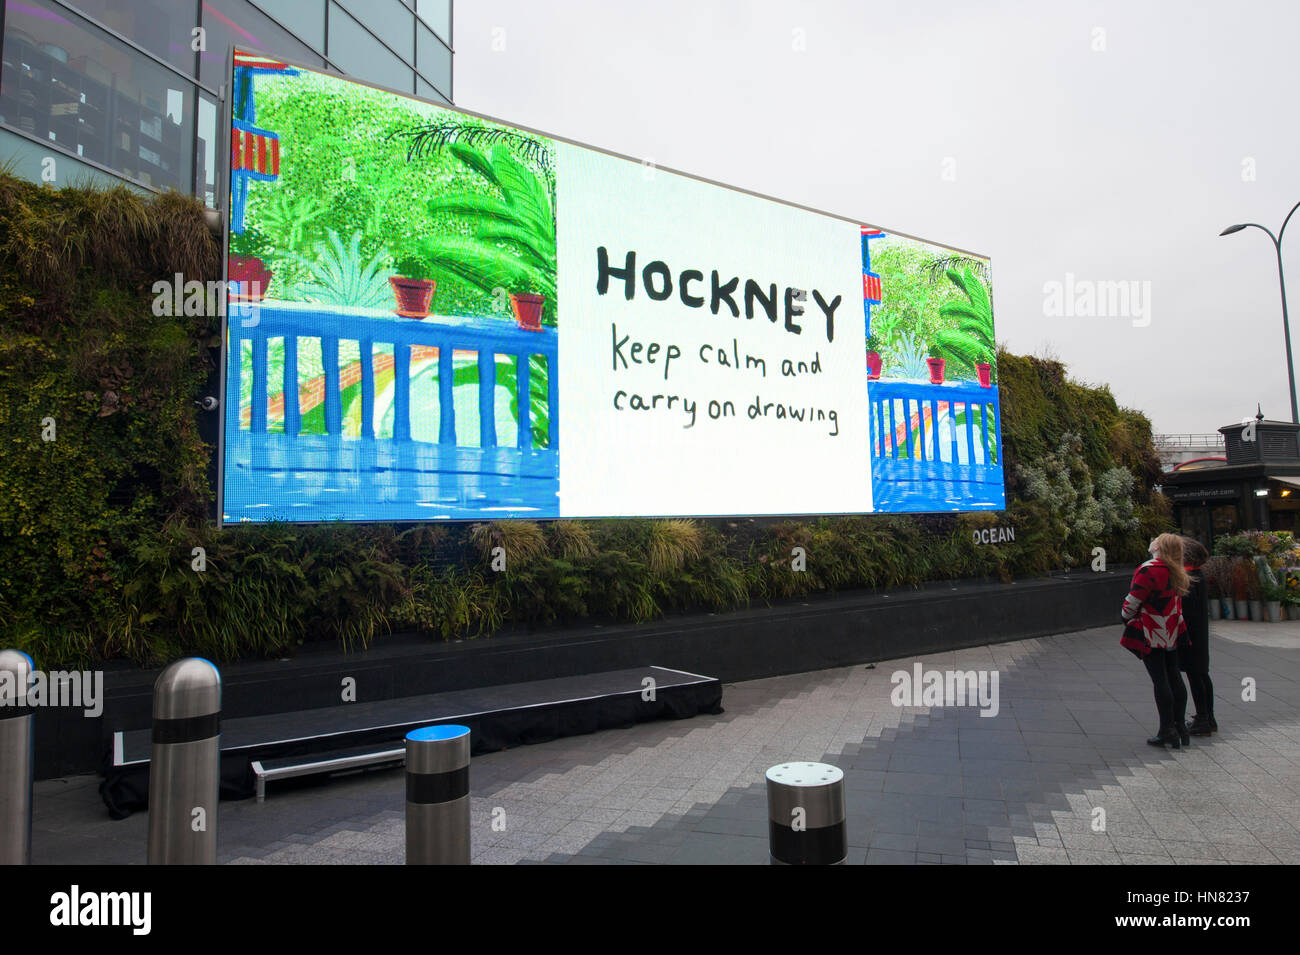 London, UK. 9th Feb, 2017. An iPad painting by the artist, David Hockney is unveiled for public display on an advertising Stock Photo